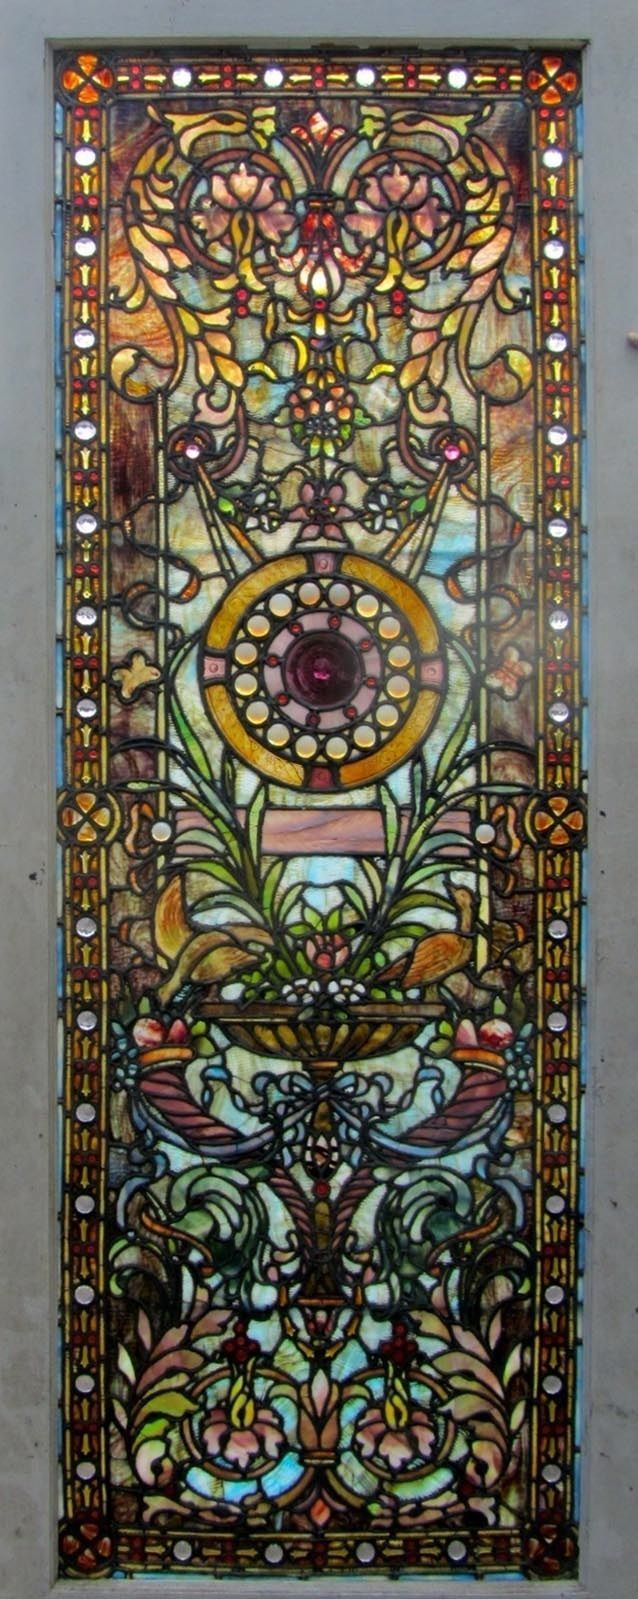 Antique stained glass doors - Find This Pin And More On Stained Decorative Glass Antique American Stained Glass Door